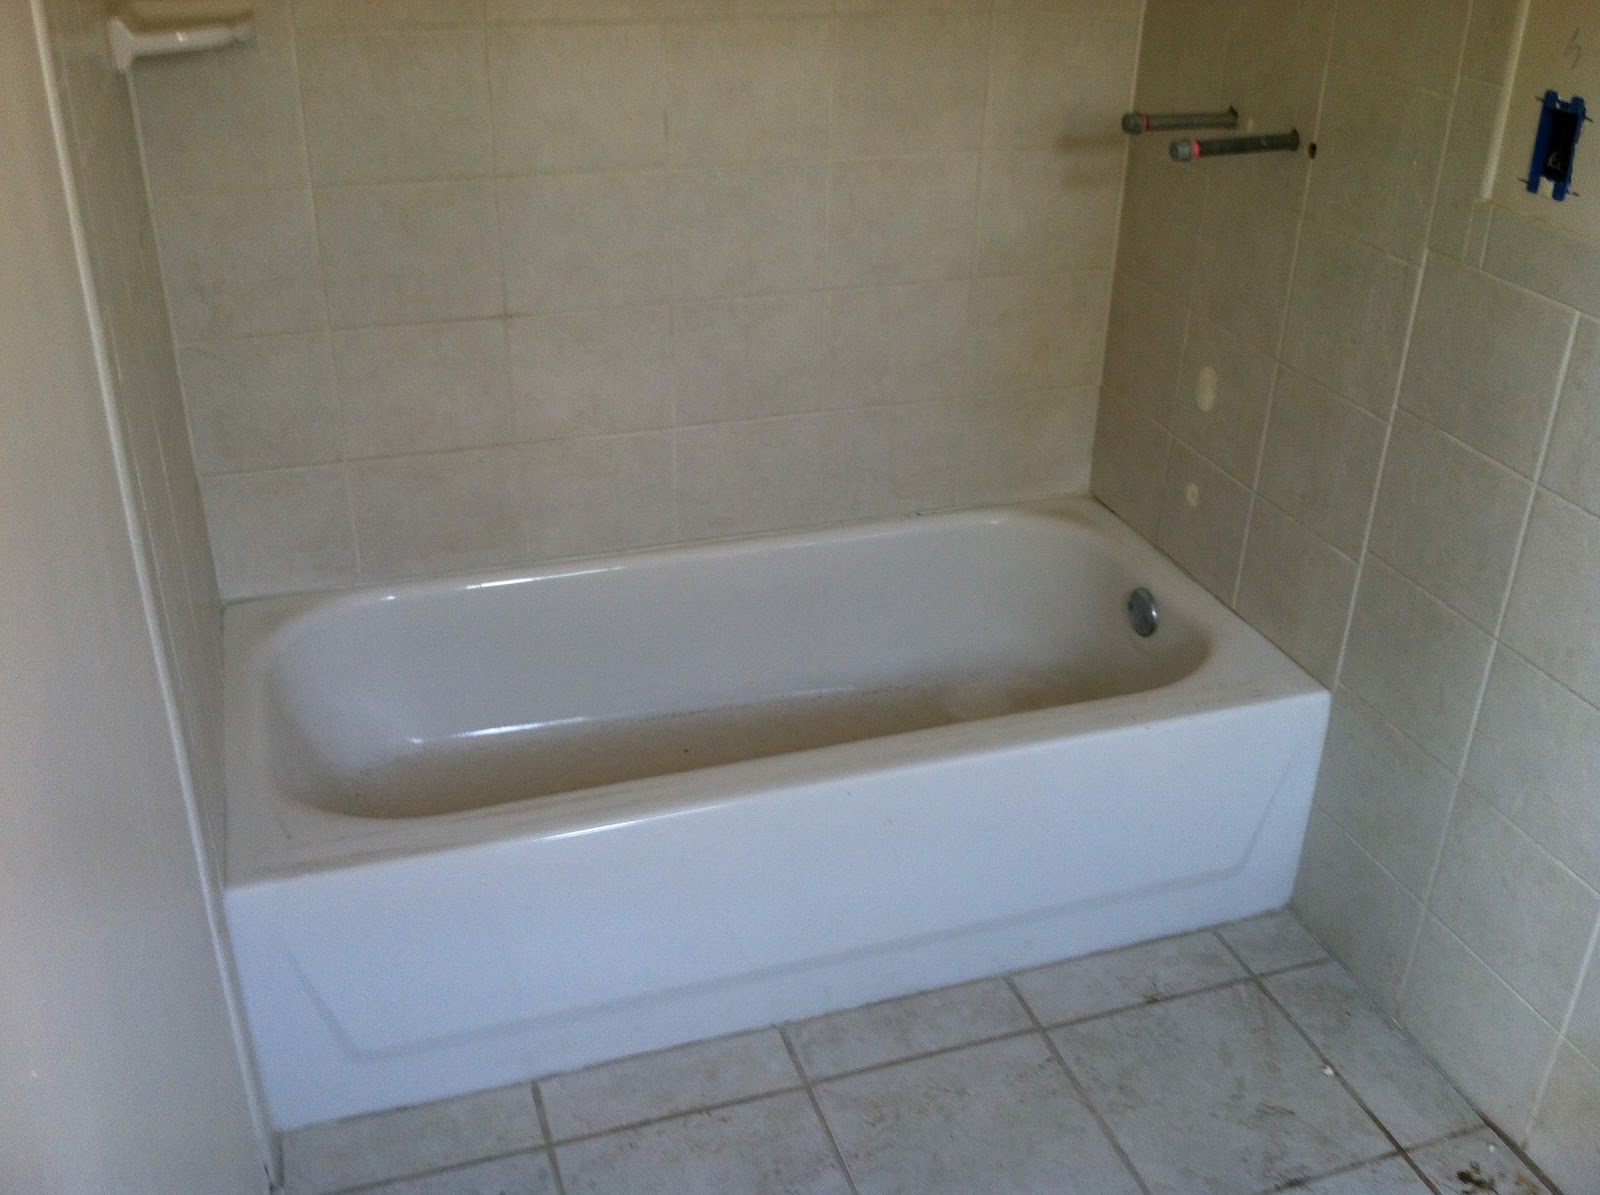 The Tub Is Being Replaced With A 3x5 Shower For Our Guests